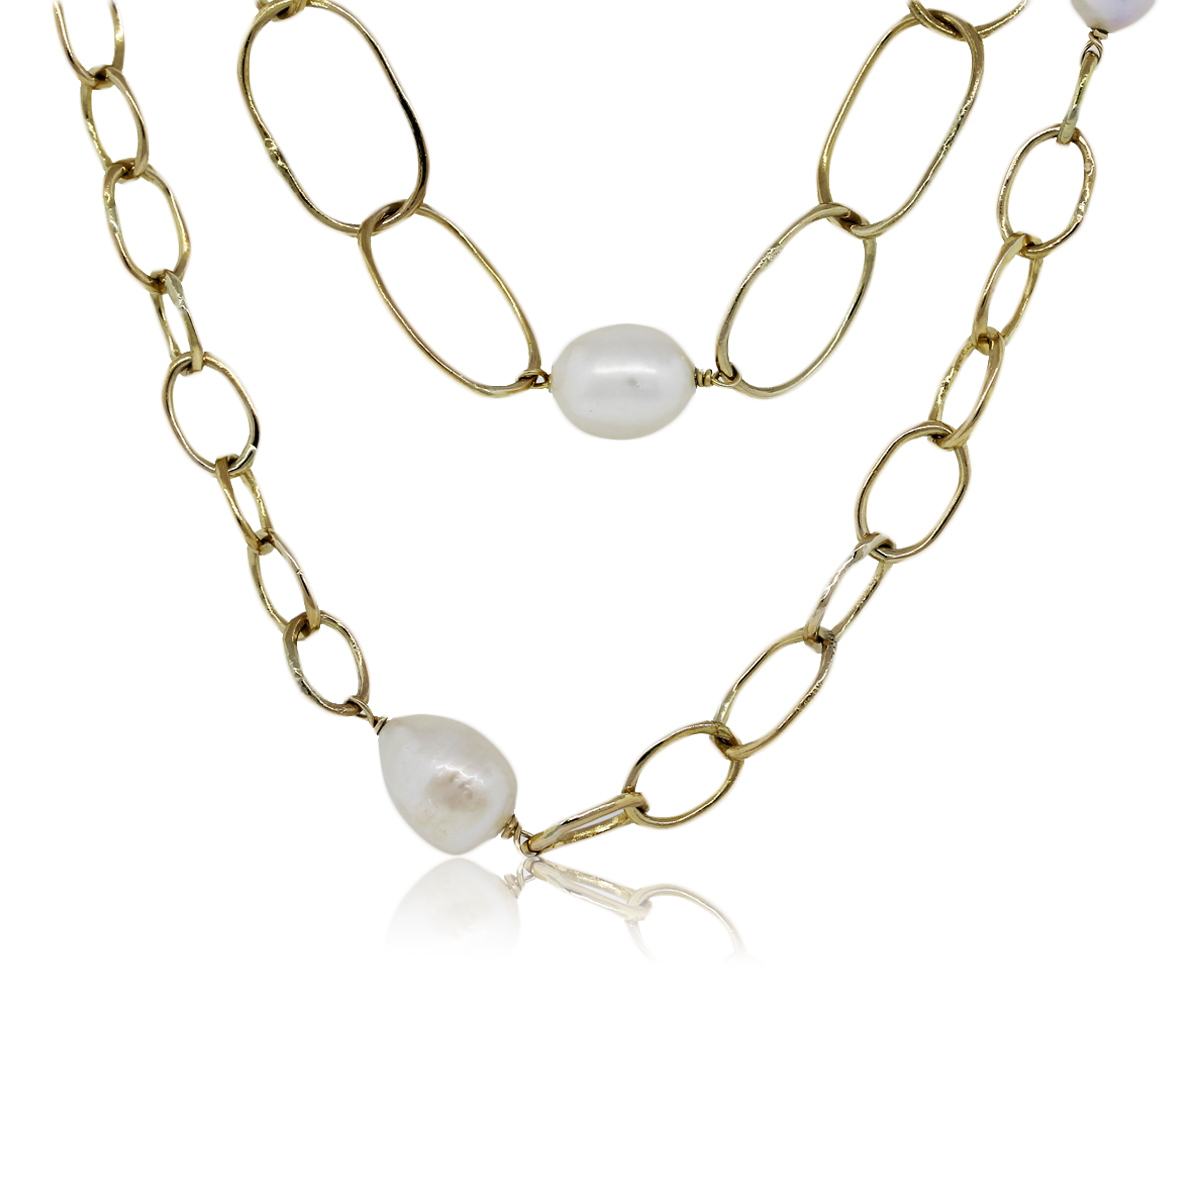 You are Viewing this Pearl Station Necklace!